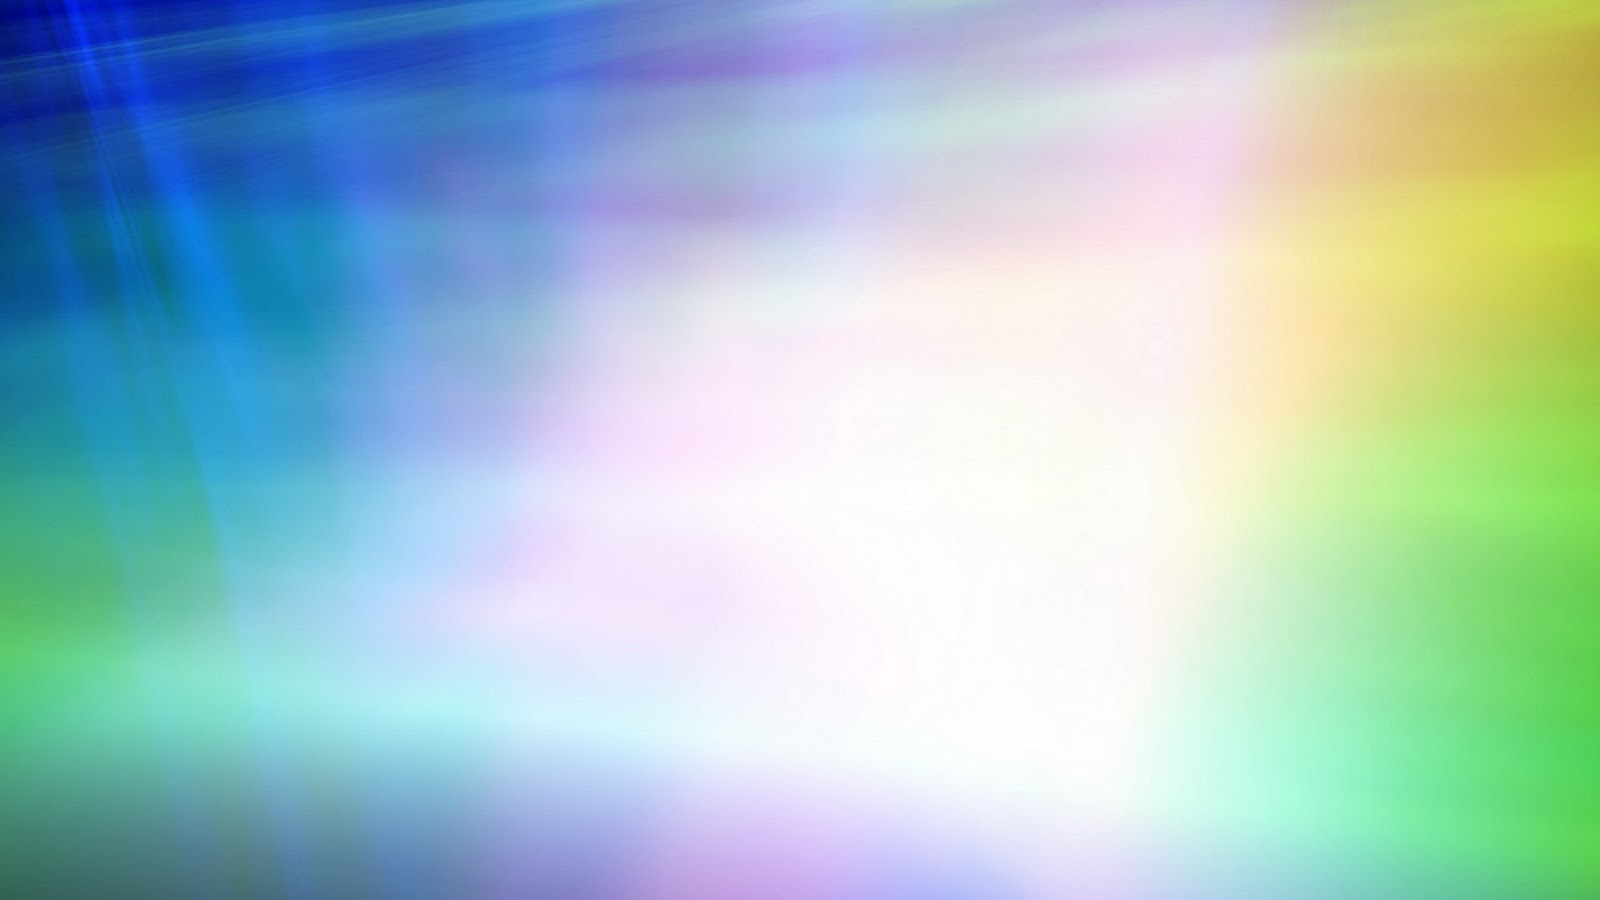 colorful-backgrounds-hd-backgrounds1